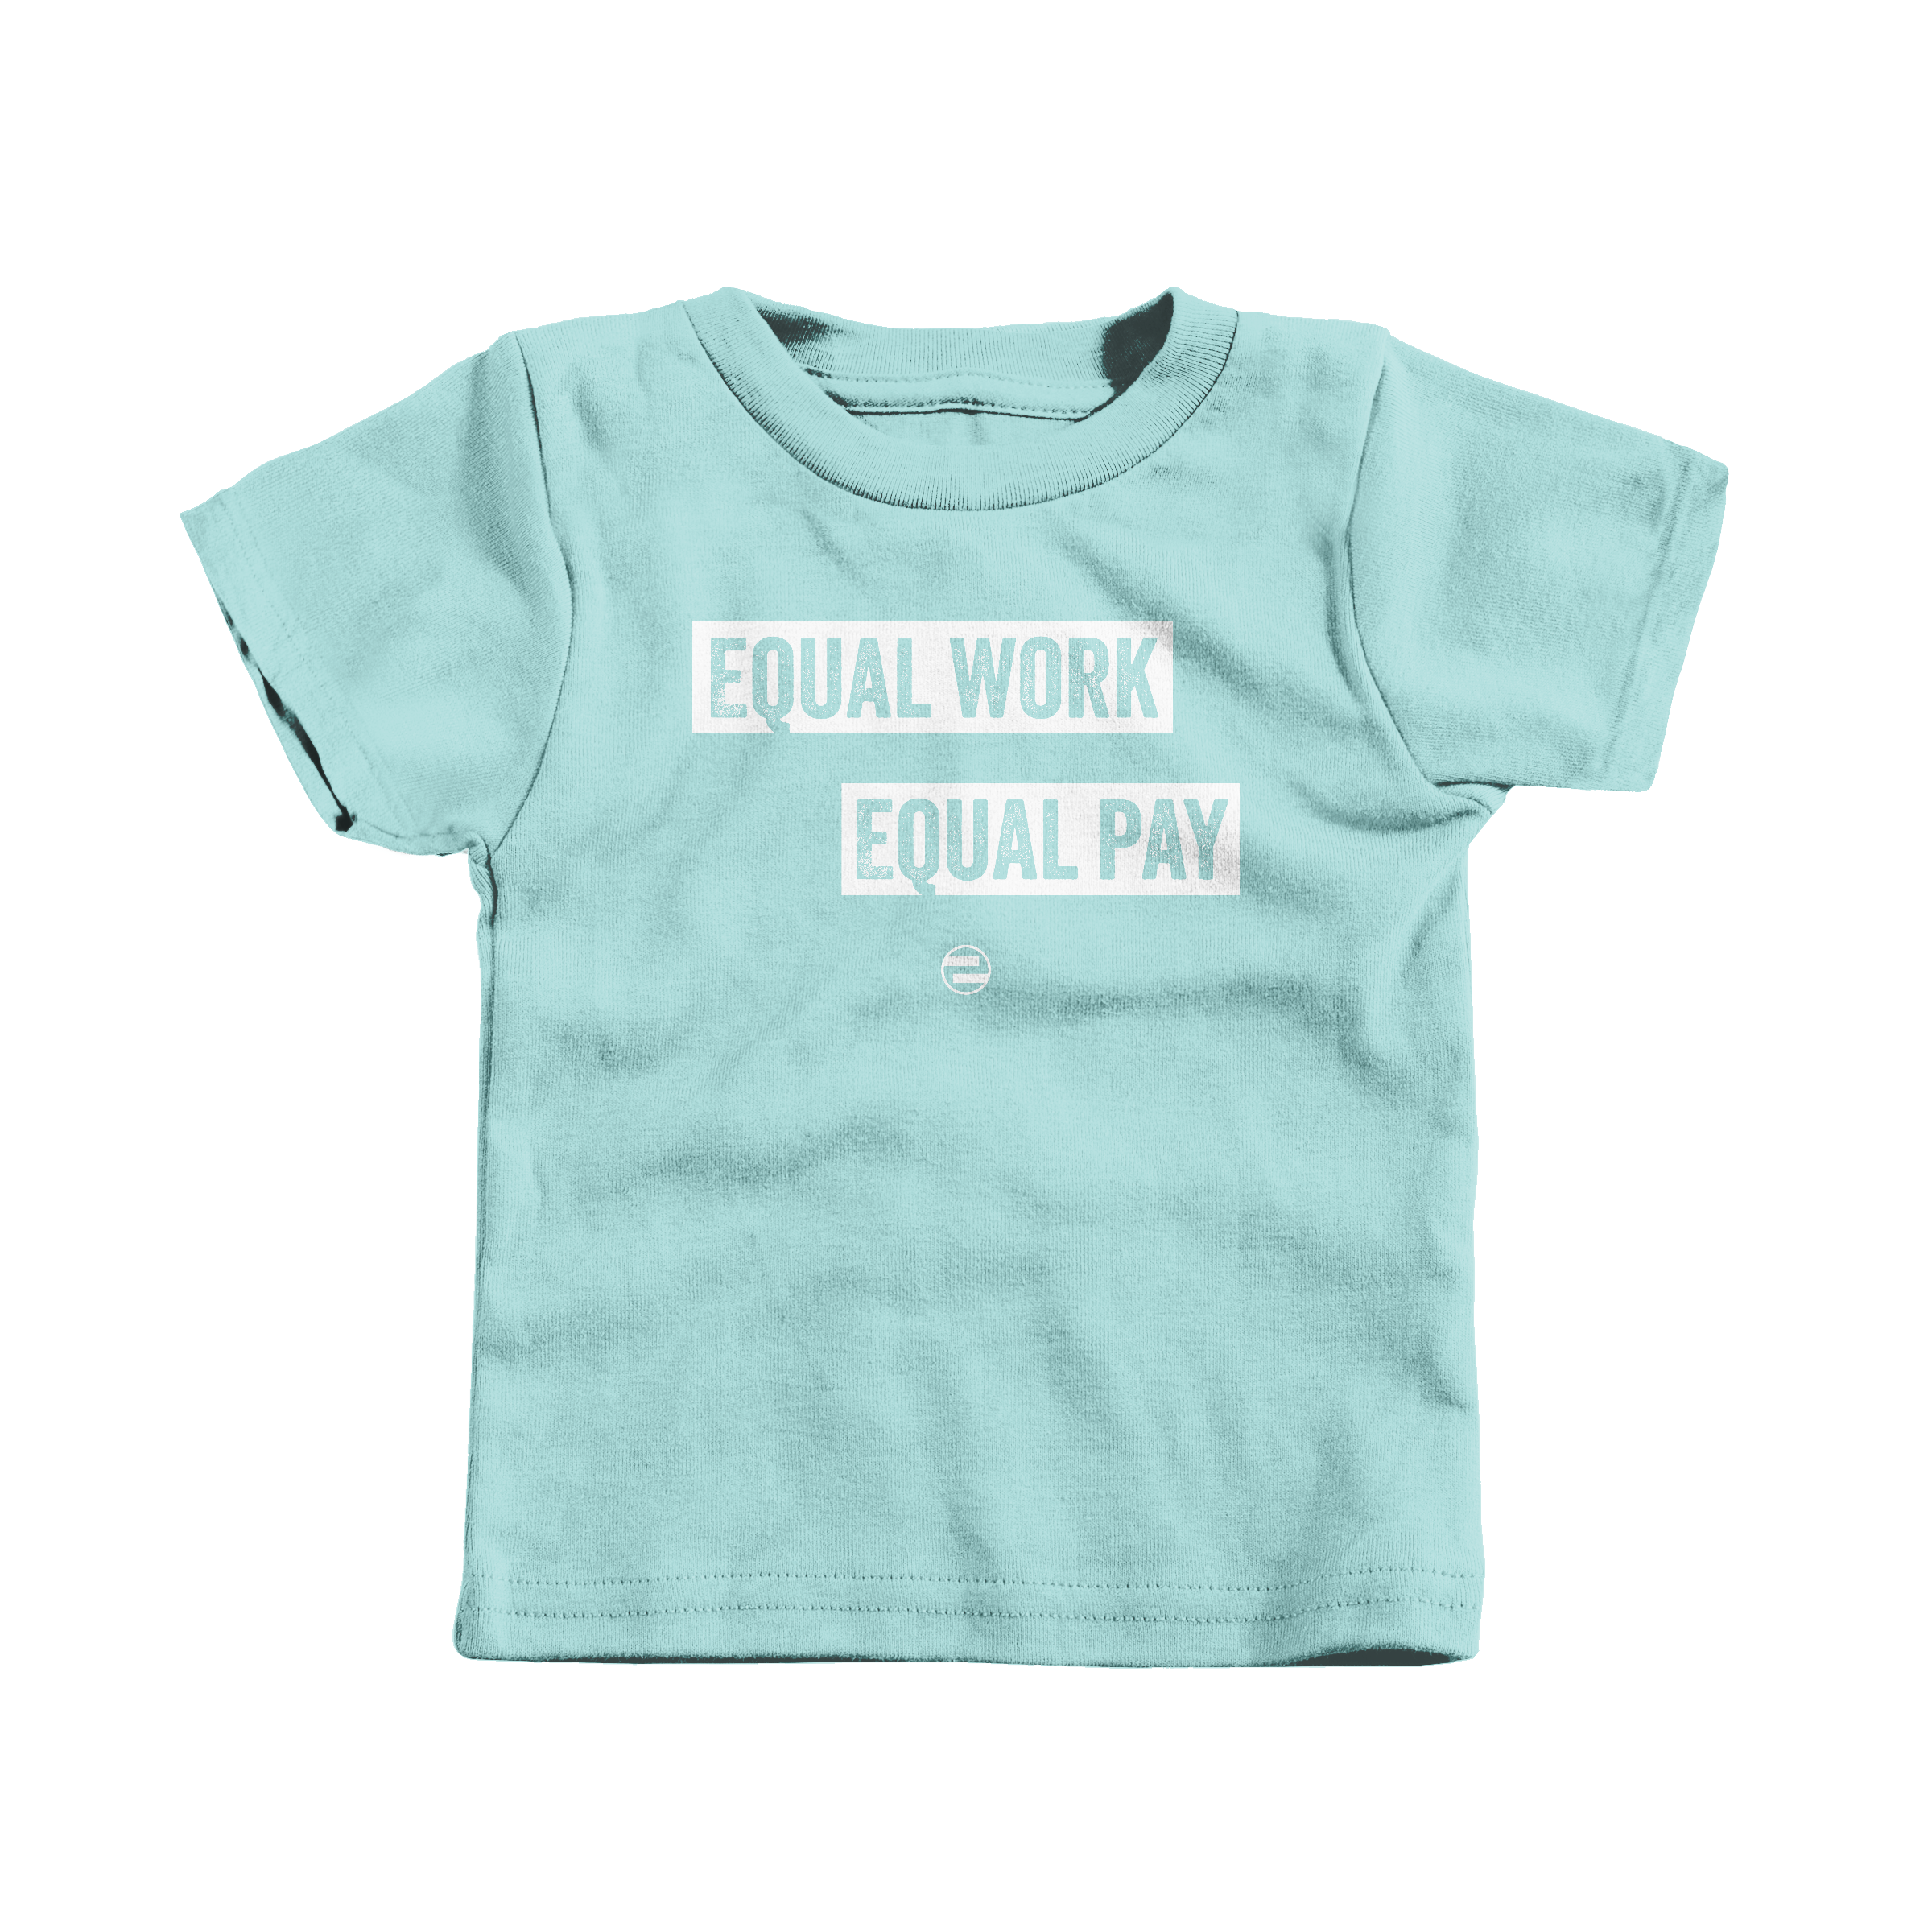 """GenEquality """"Equal Work Equal Pay"""" Kids Tee & Onesie Chill (T-Shirt)"""